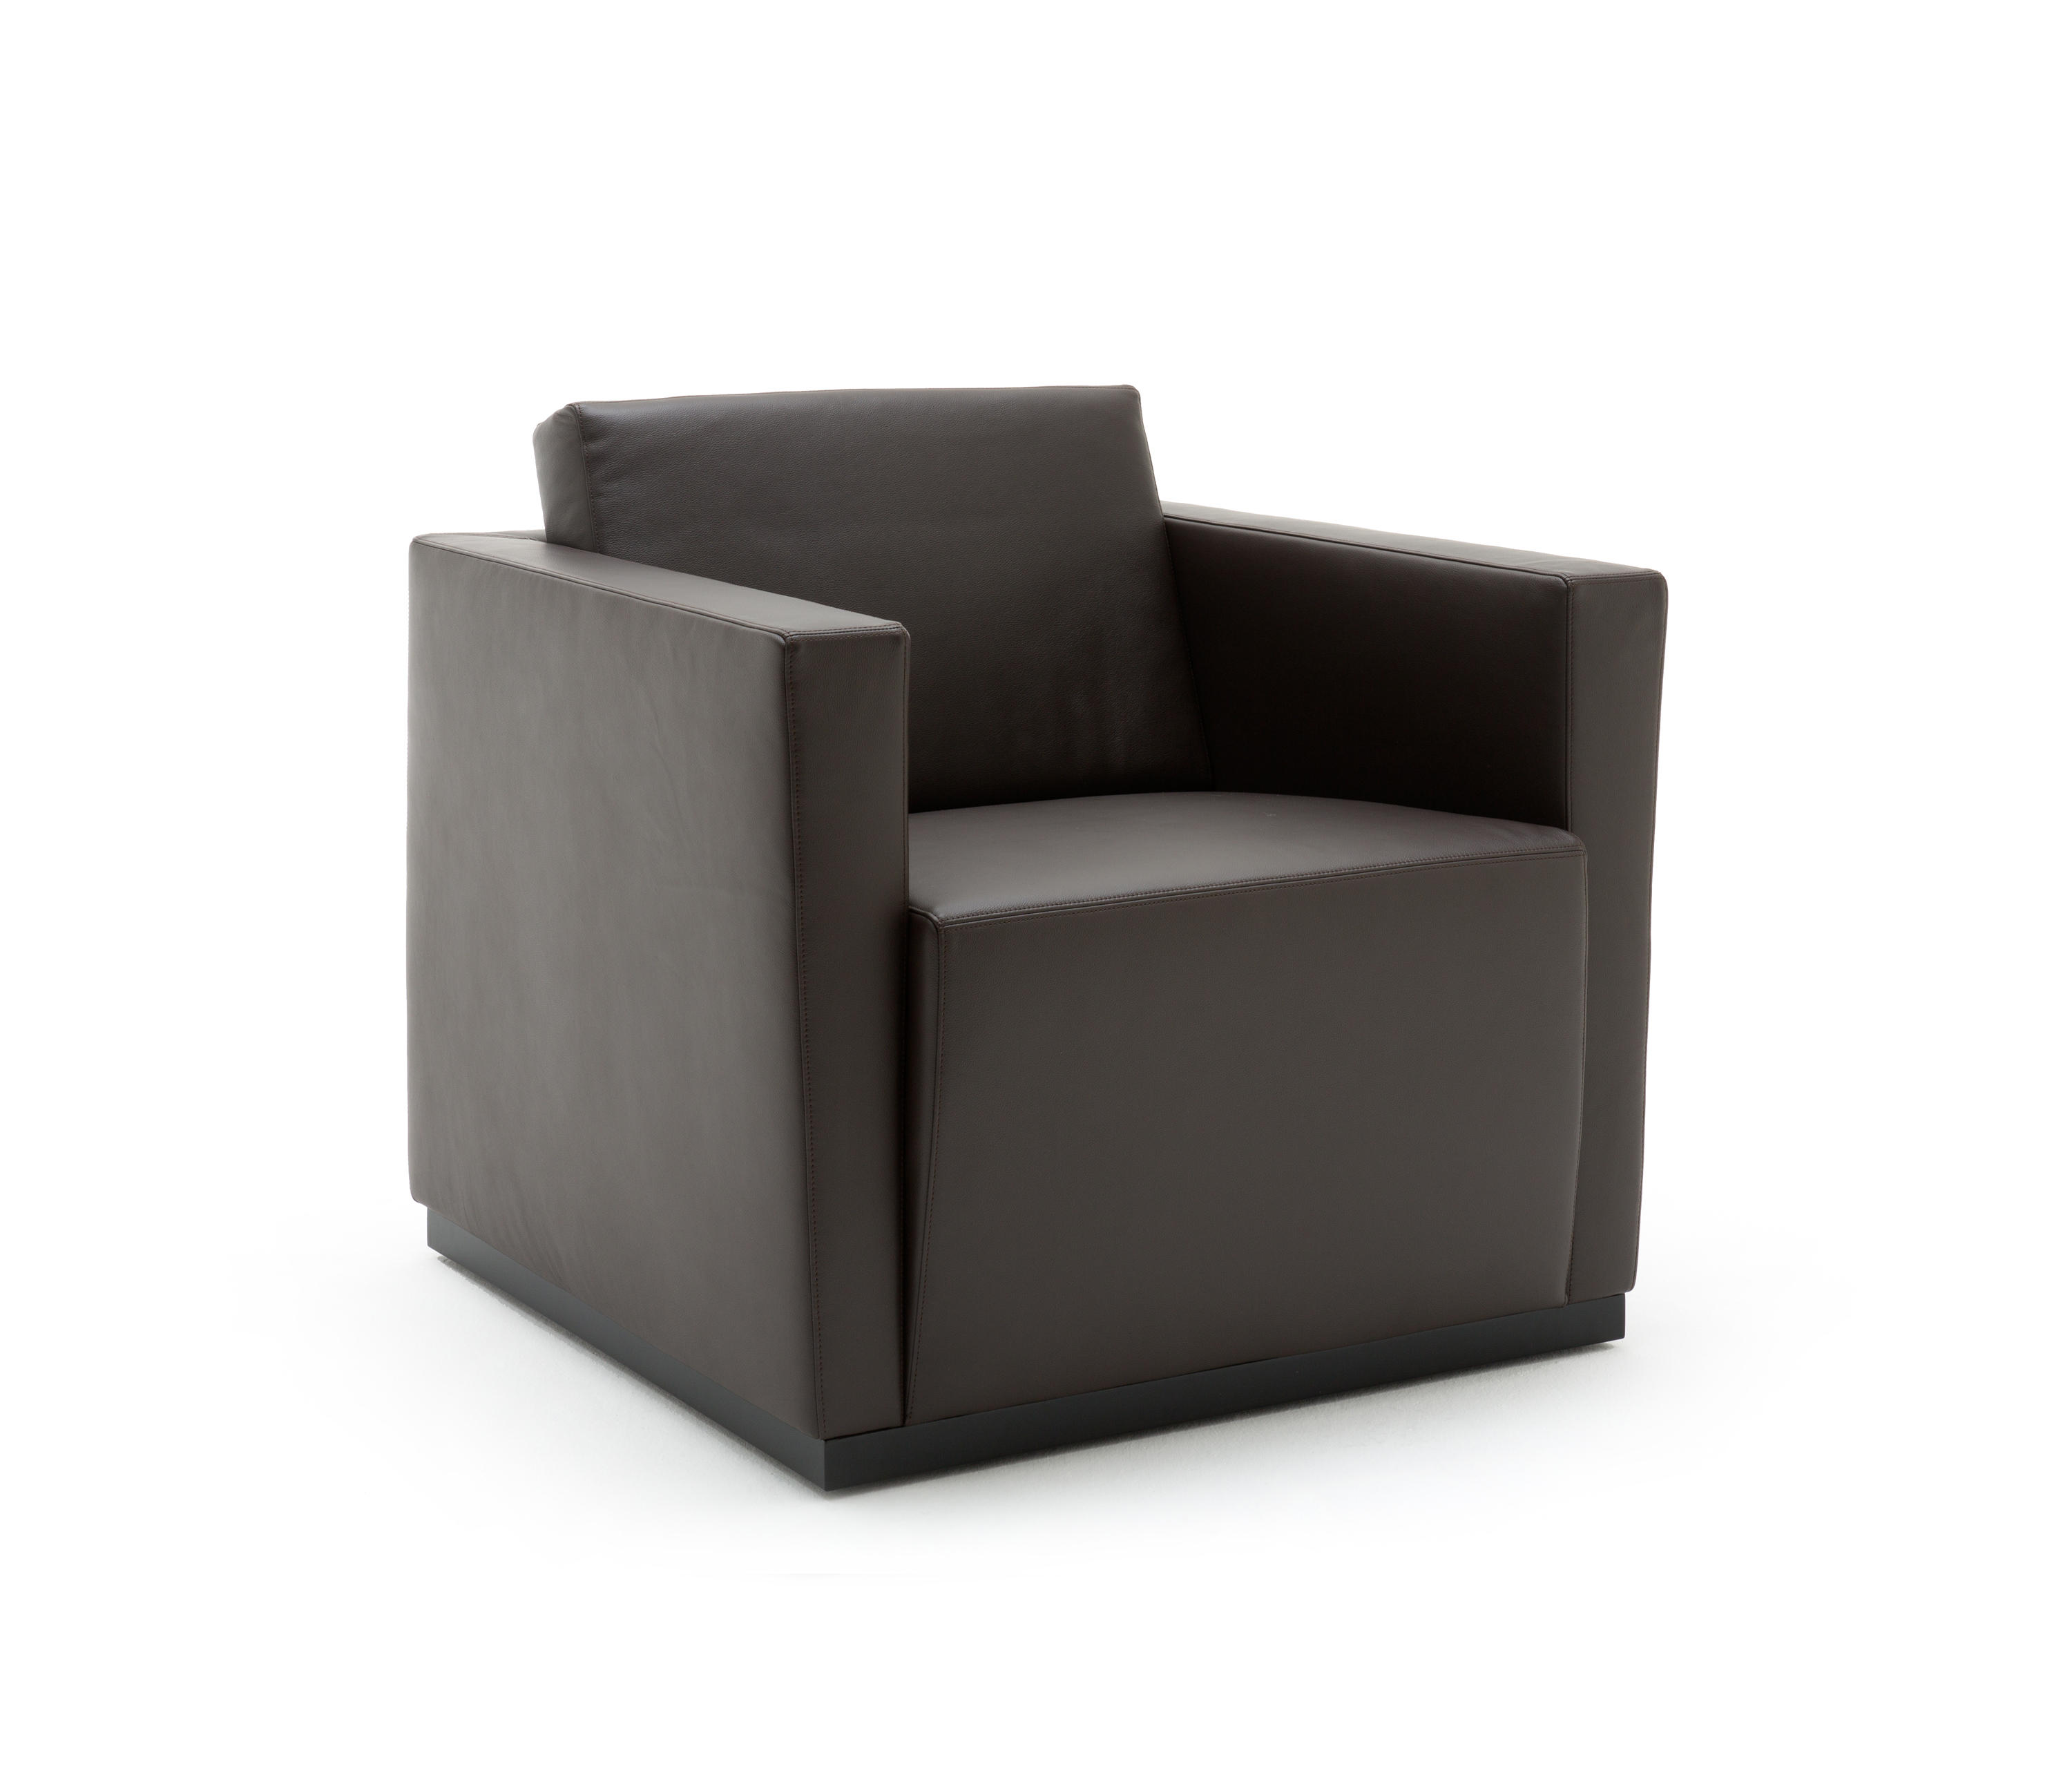 elton sessel loungesessel von walter knoll architonic. Black Bedroom Furniture Sets. Home Design Ideas